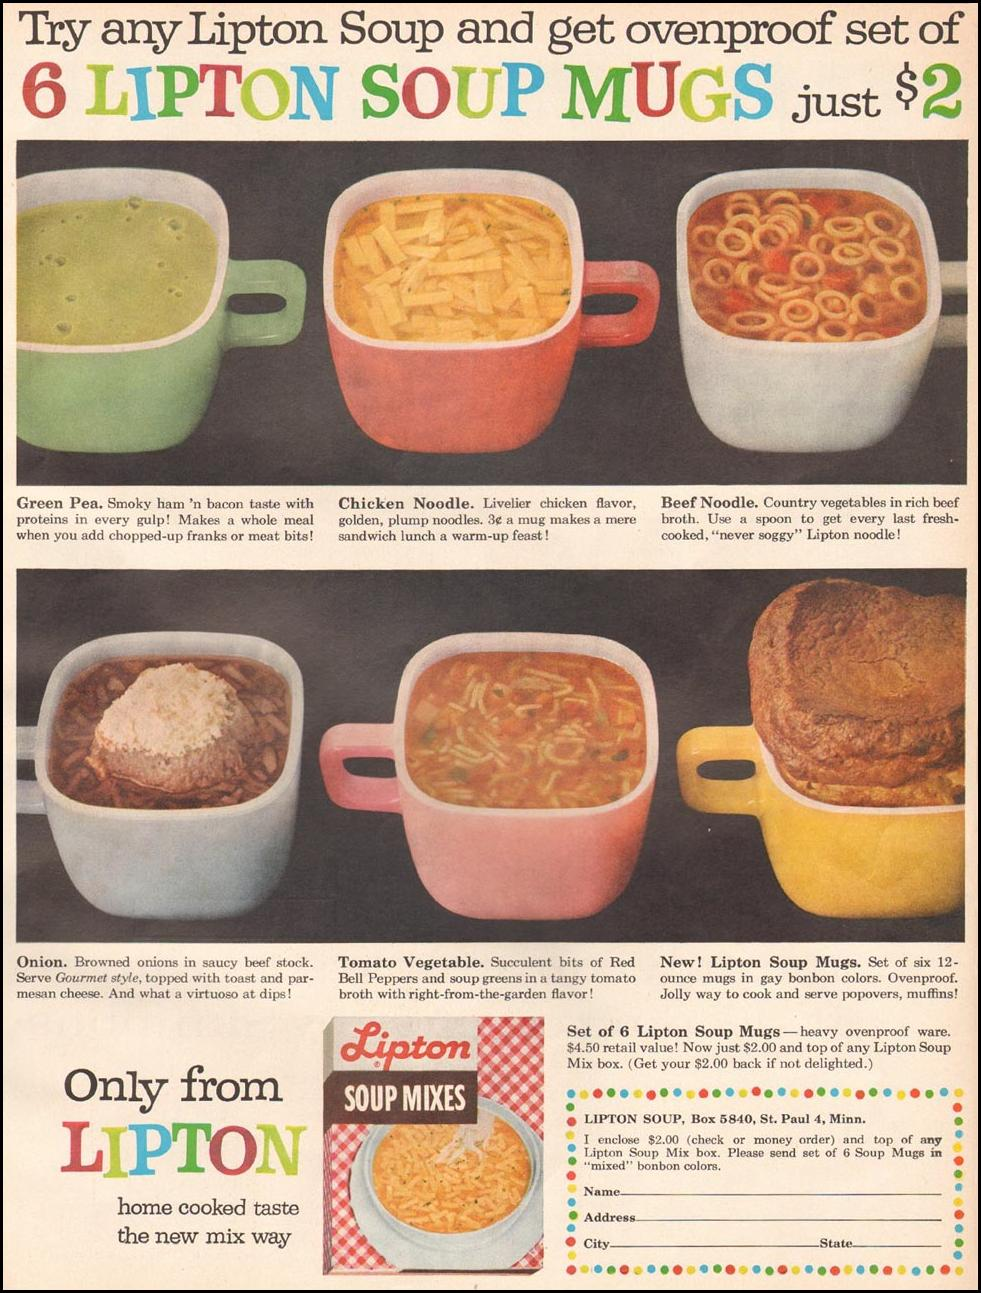 LIPTON SOUP MIXES BETTER HOMES AND GARDENS 03/01/1960 p. 25